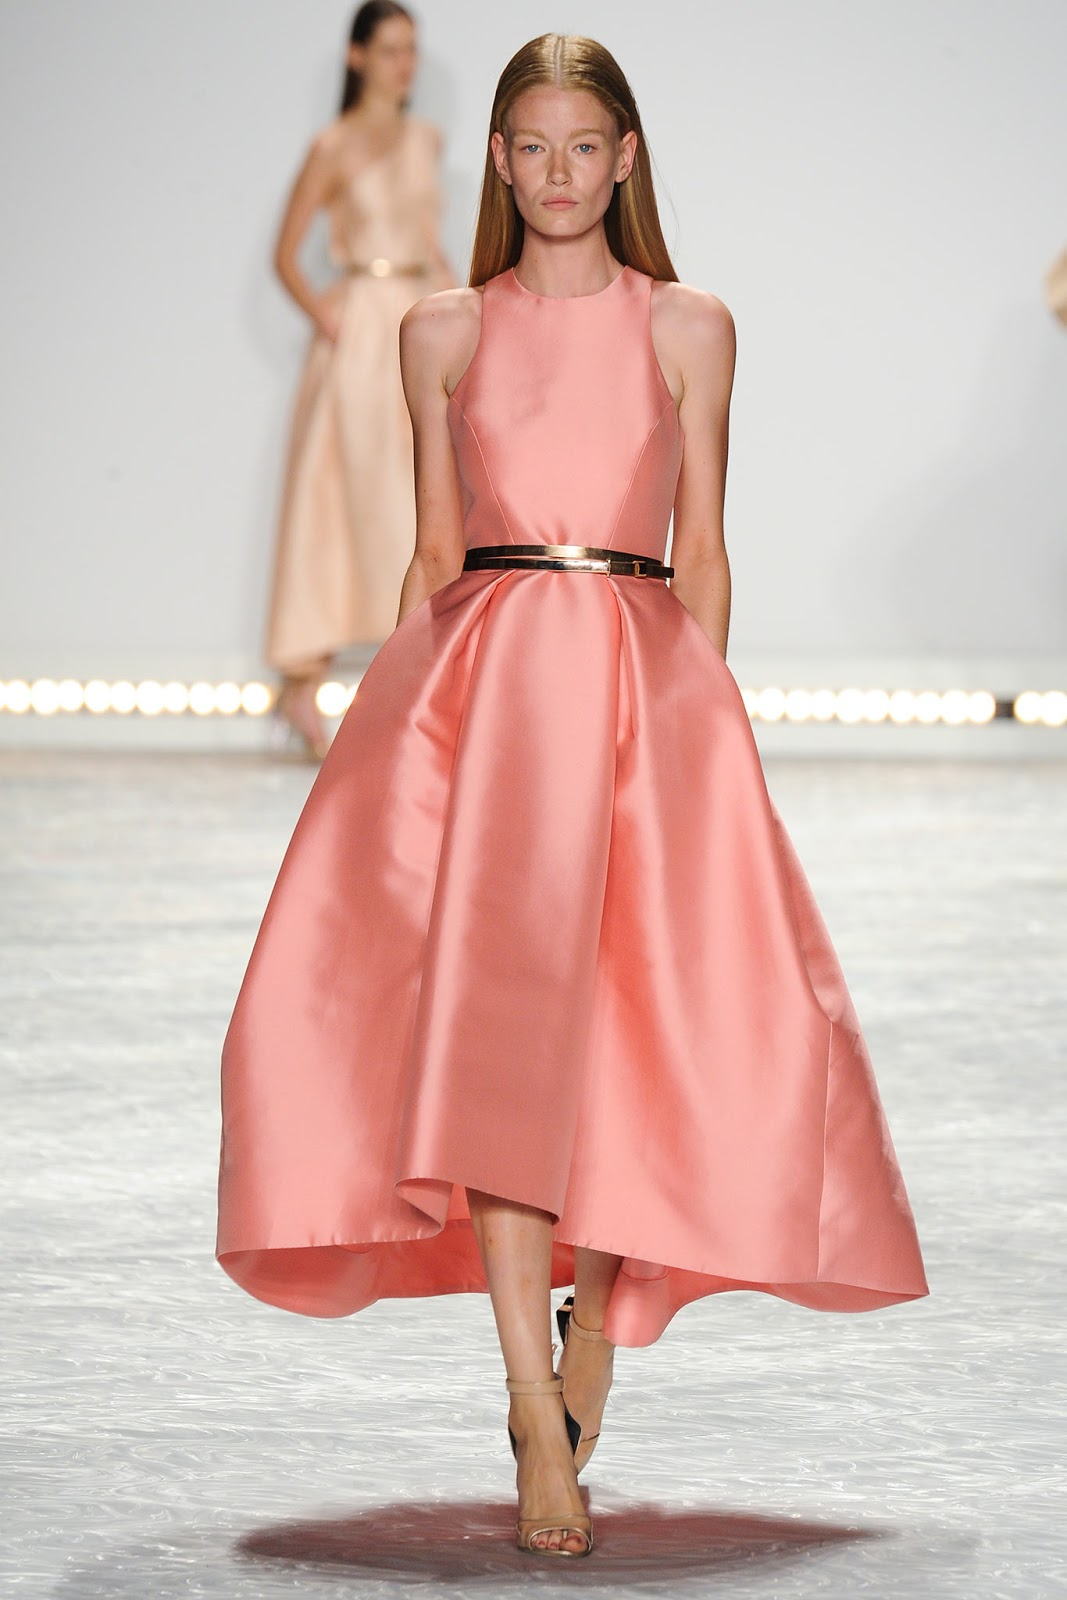 Pantone colour trend report 2015 / strawberry ice on a runway at Monique Lhuillier Spring/Summer 2015 via fashioned by love brutish fashion blog